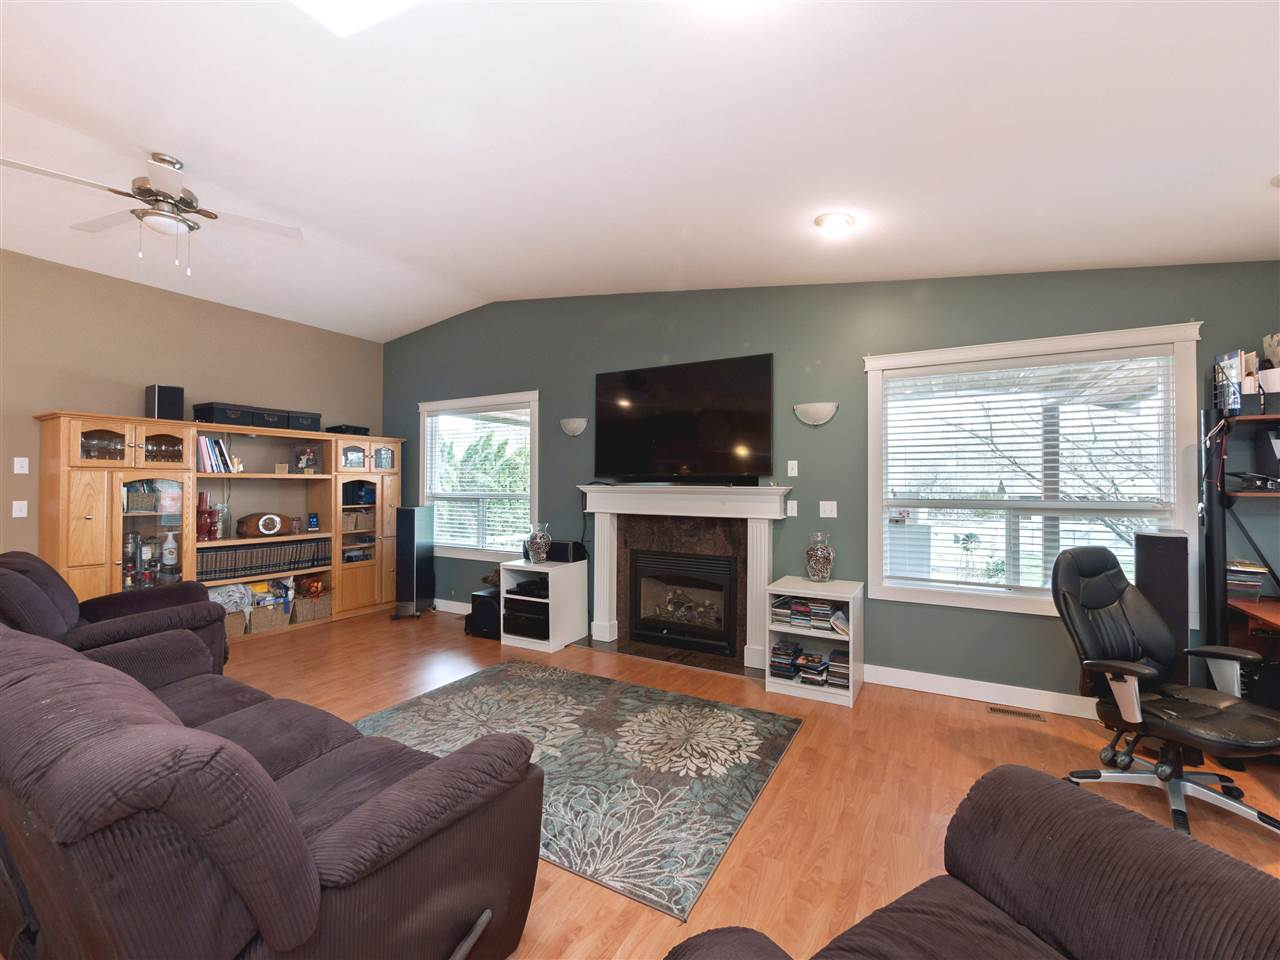 Photo 6: Photos: 33157 CHERRY Avenue in Mission: Mission BC House for sale : MLS® # R2236874